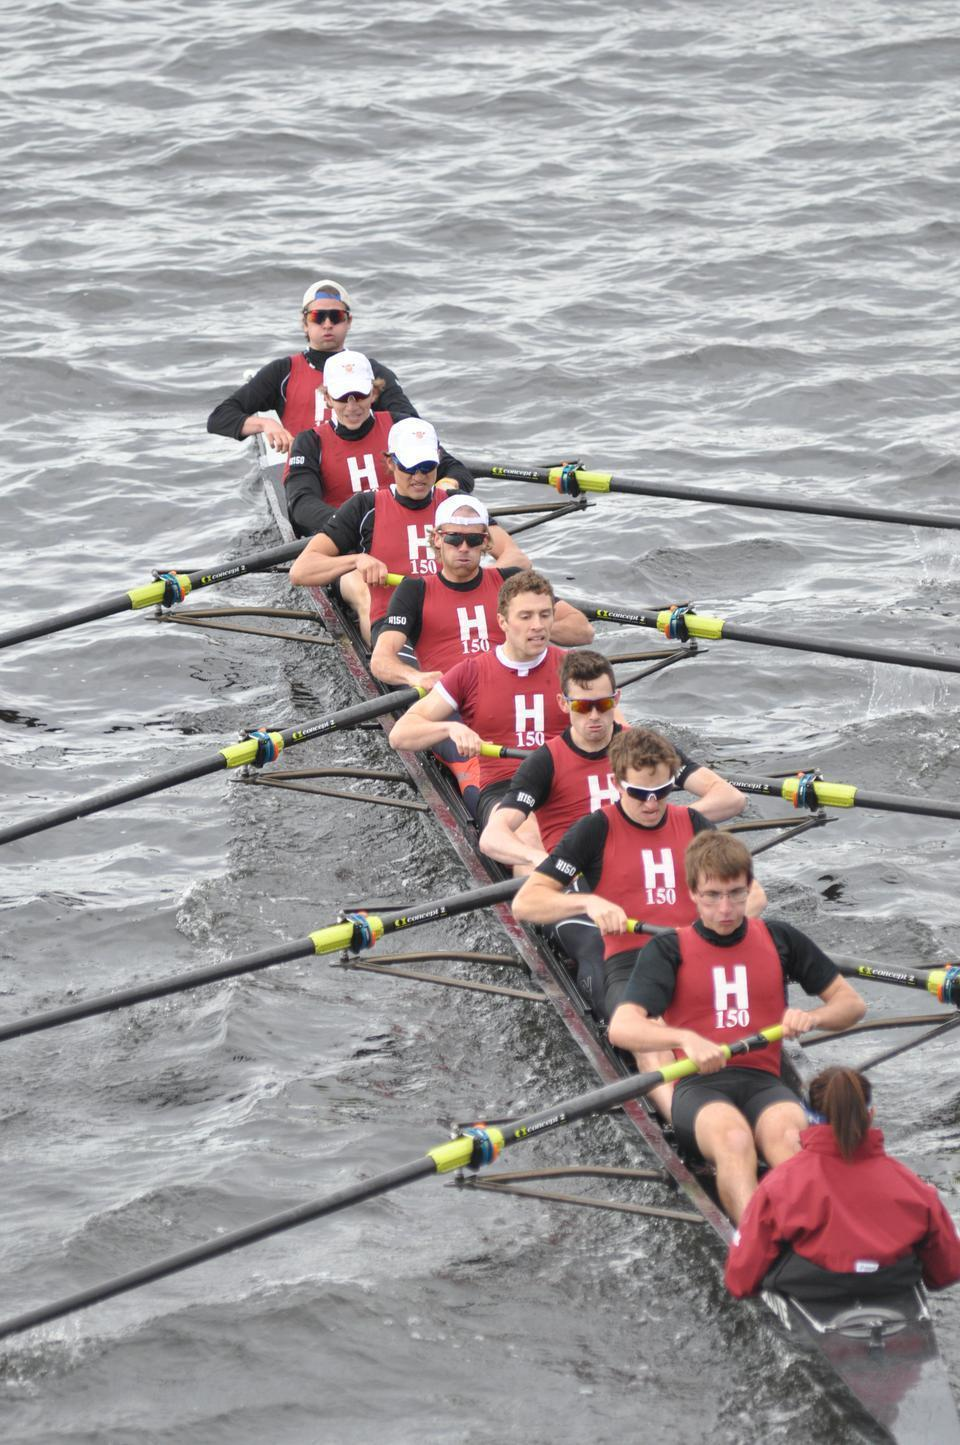 After disappointing conclusions to its previous two seasons, the Harvard lightweight varsity eight, shown here in earlier action, finally broke through in 2012, winning its first national title since 2003 at this past weekend's IRA National Championships.